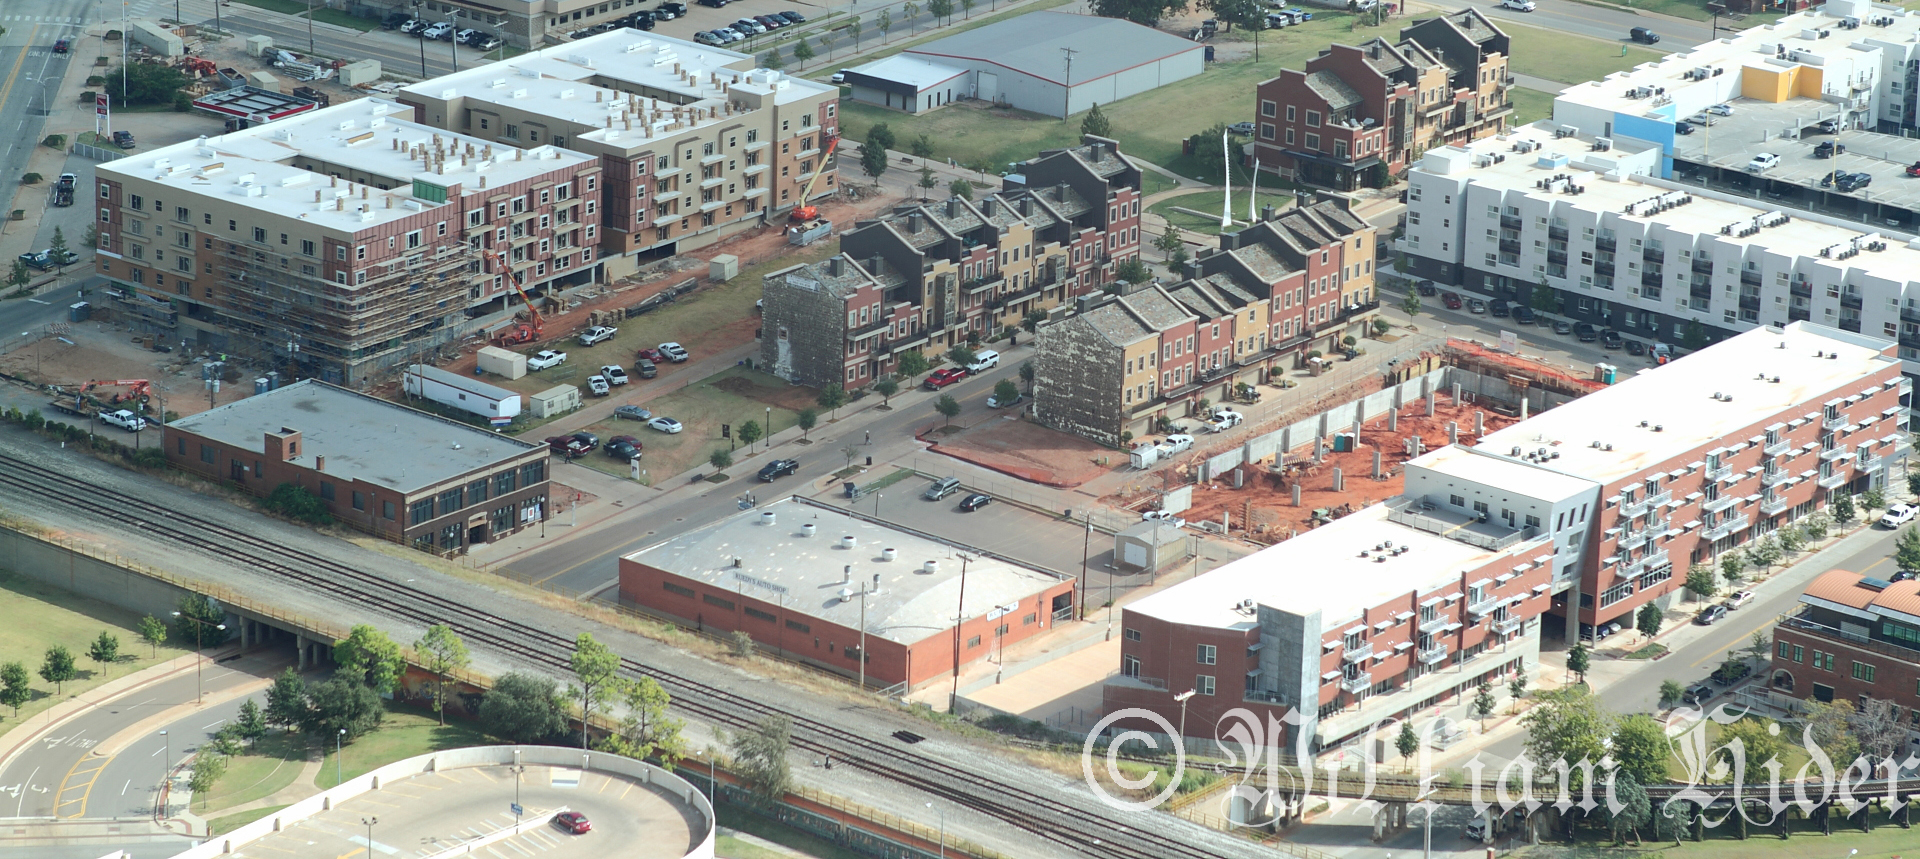 Residential construction in Oklahoma City's Deep Deuce neighborhood. Photo by William Hider.